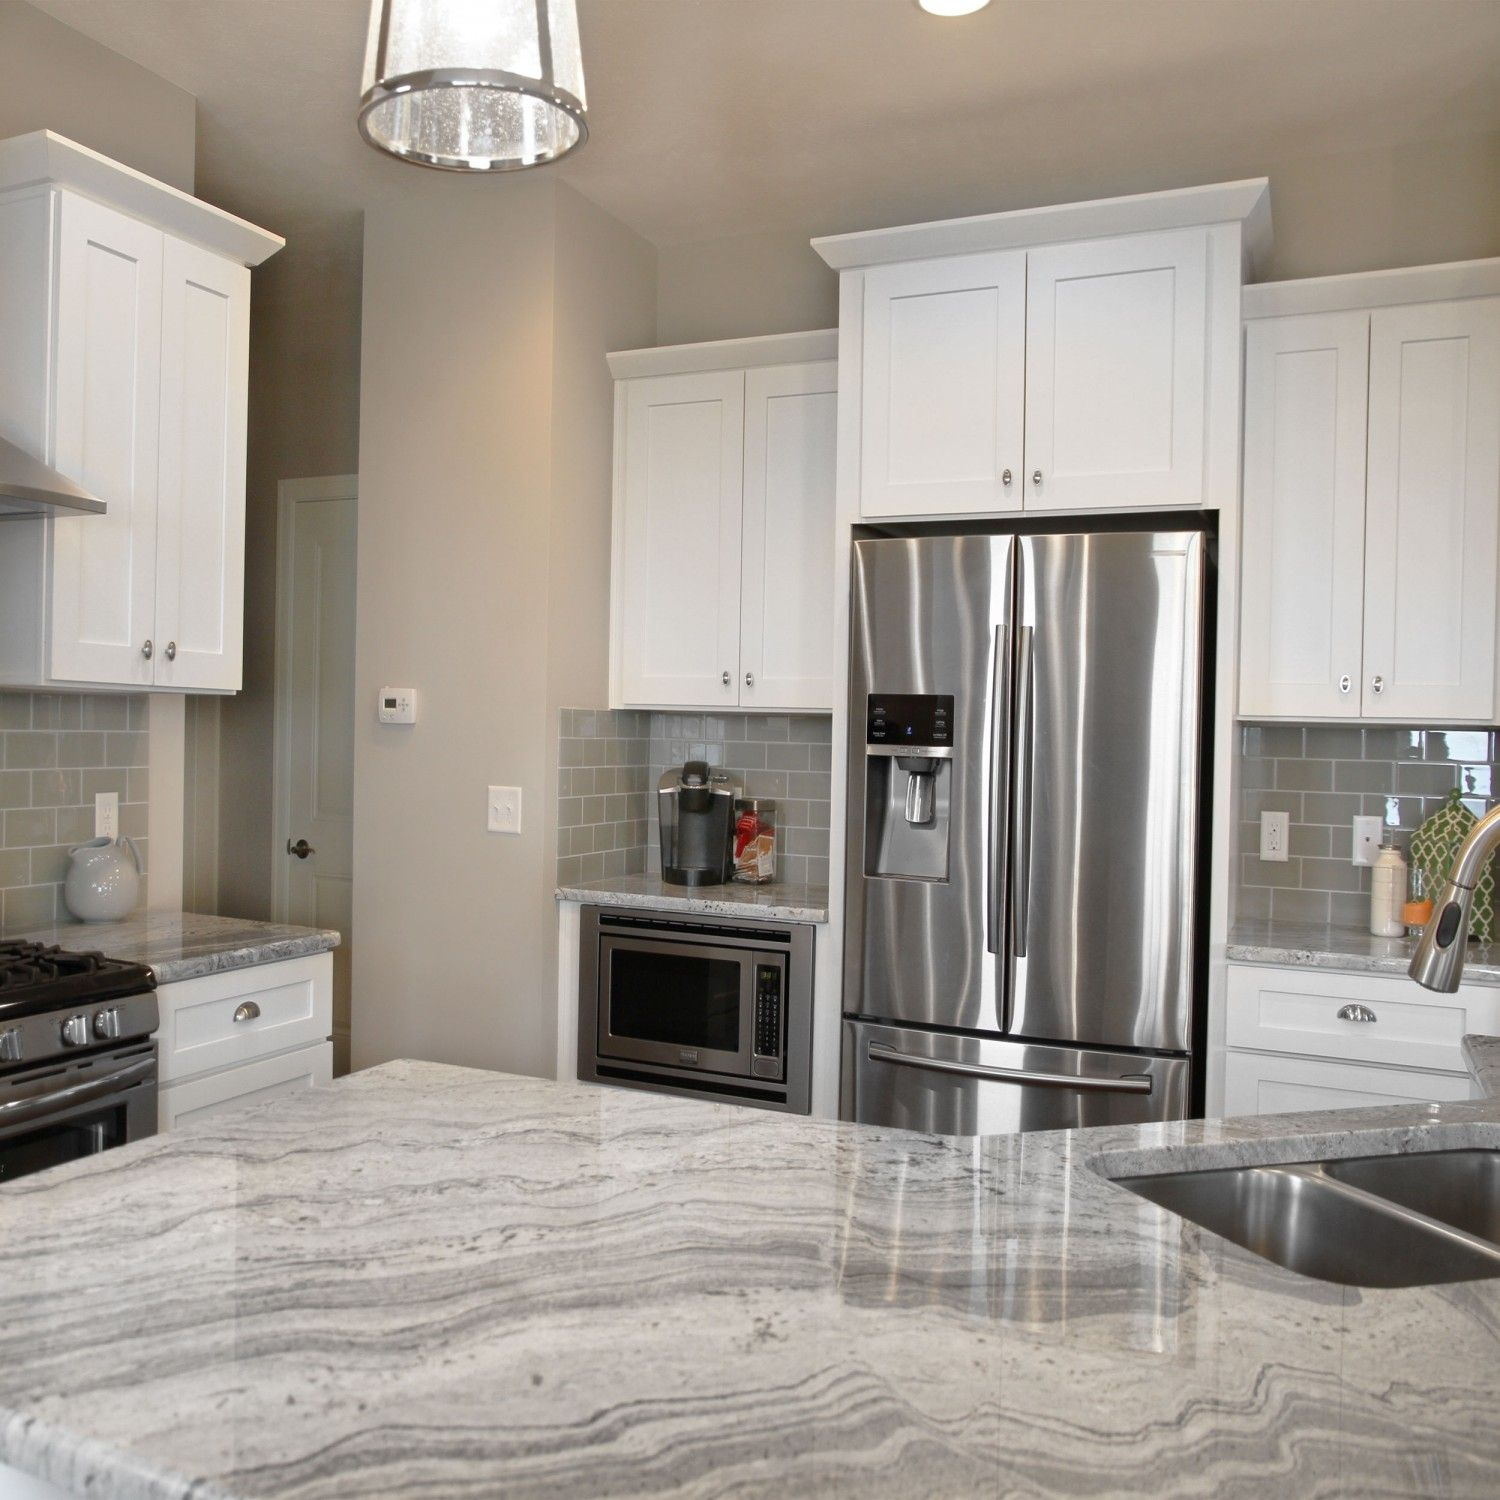 10x10 Kitchen Cabinets 10x10 Kitchen Cabinets Bundle In Shaker White With Soft